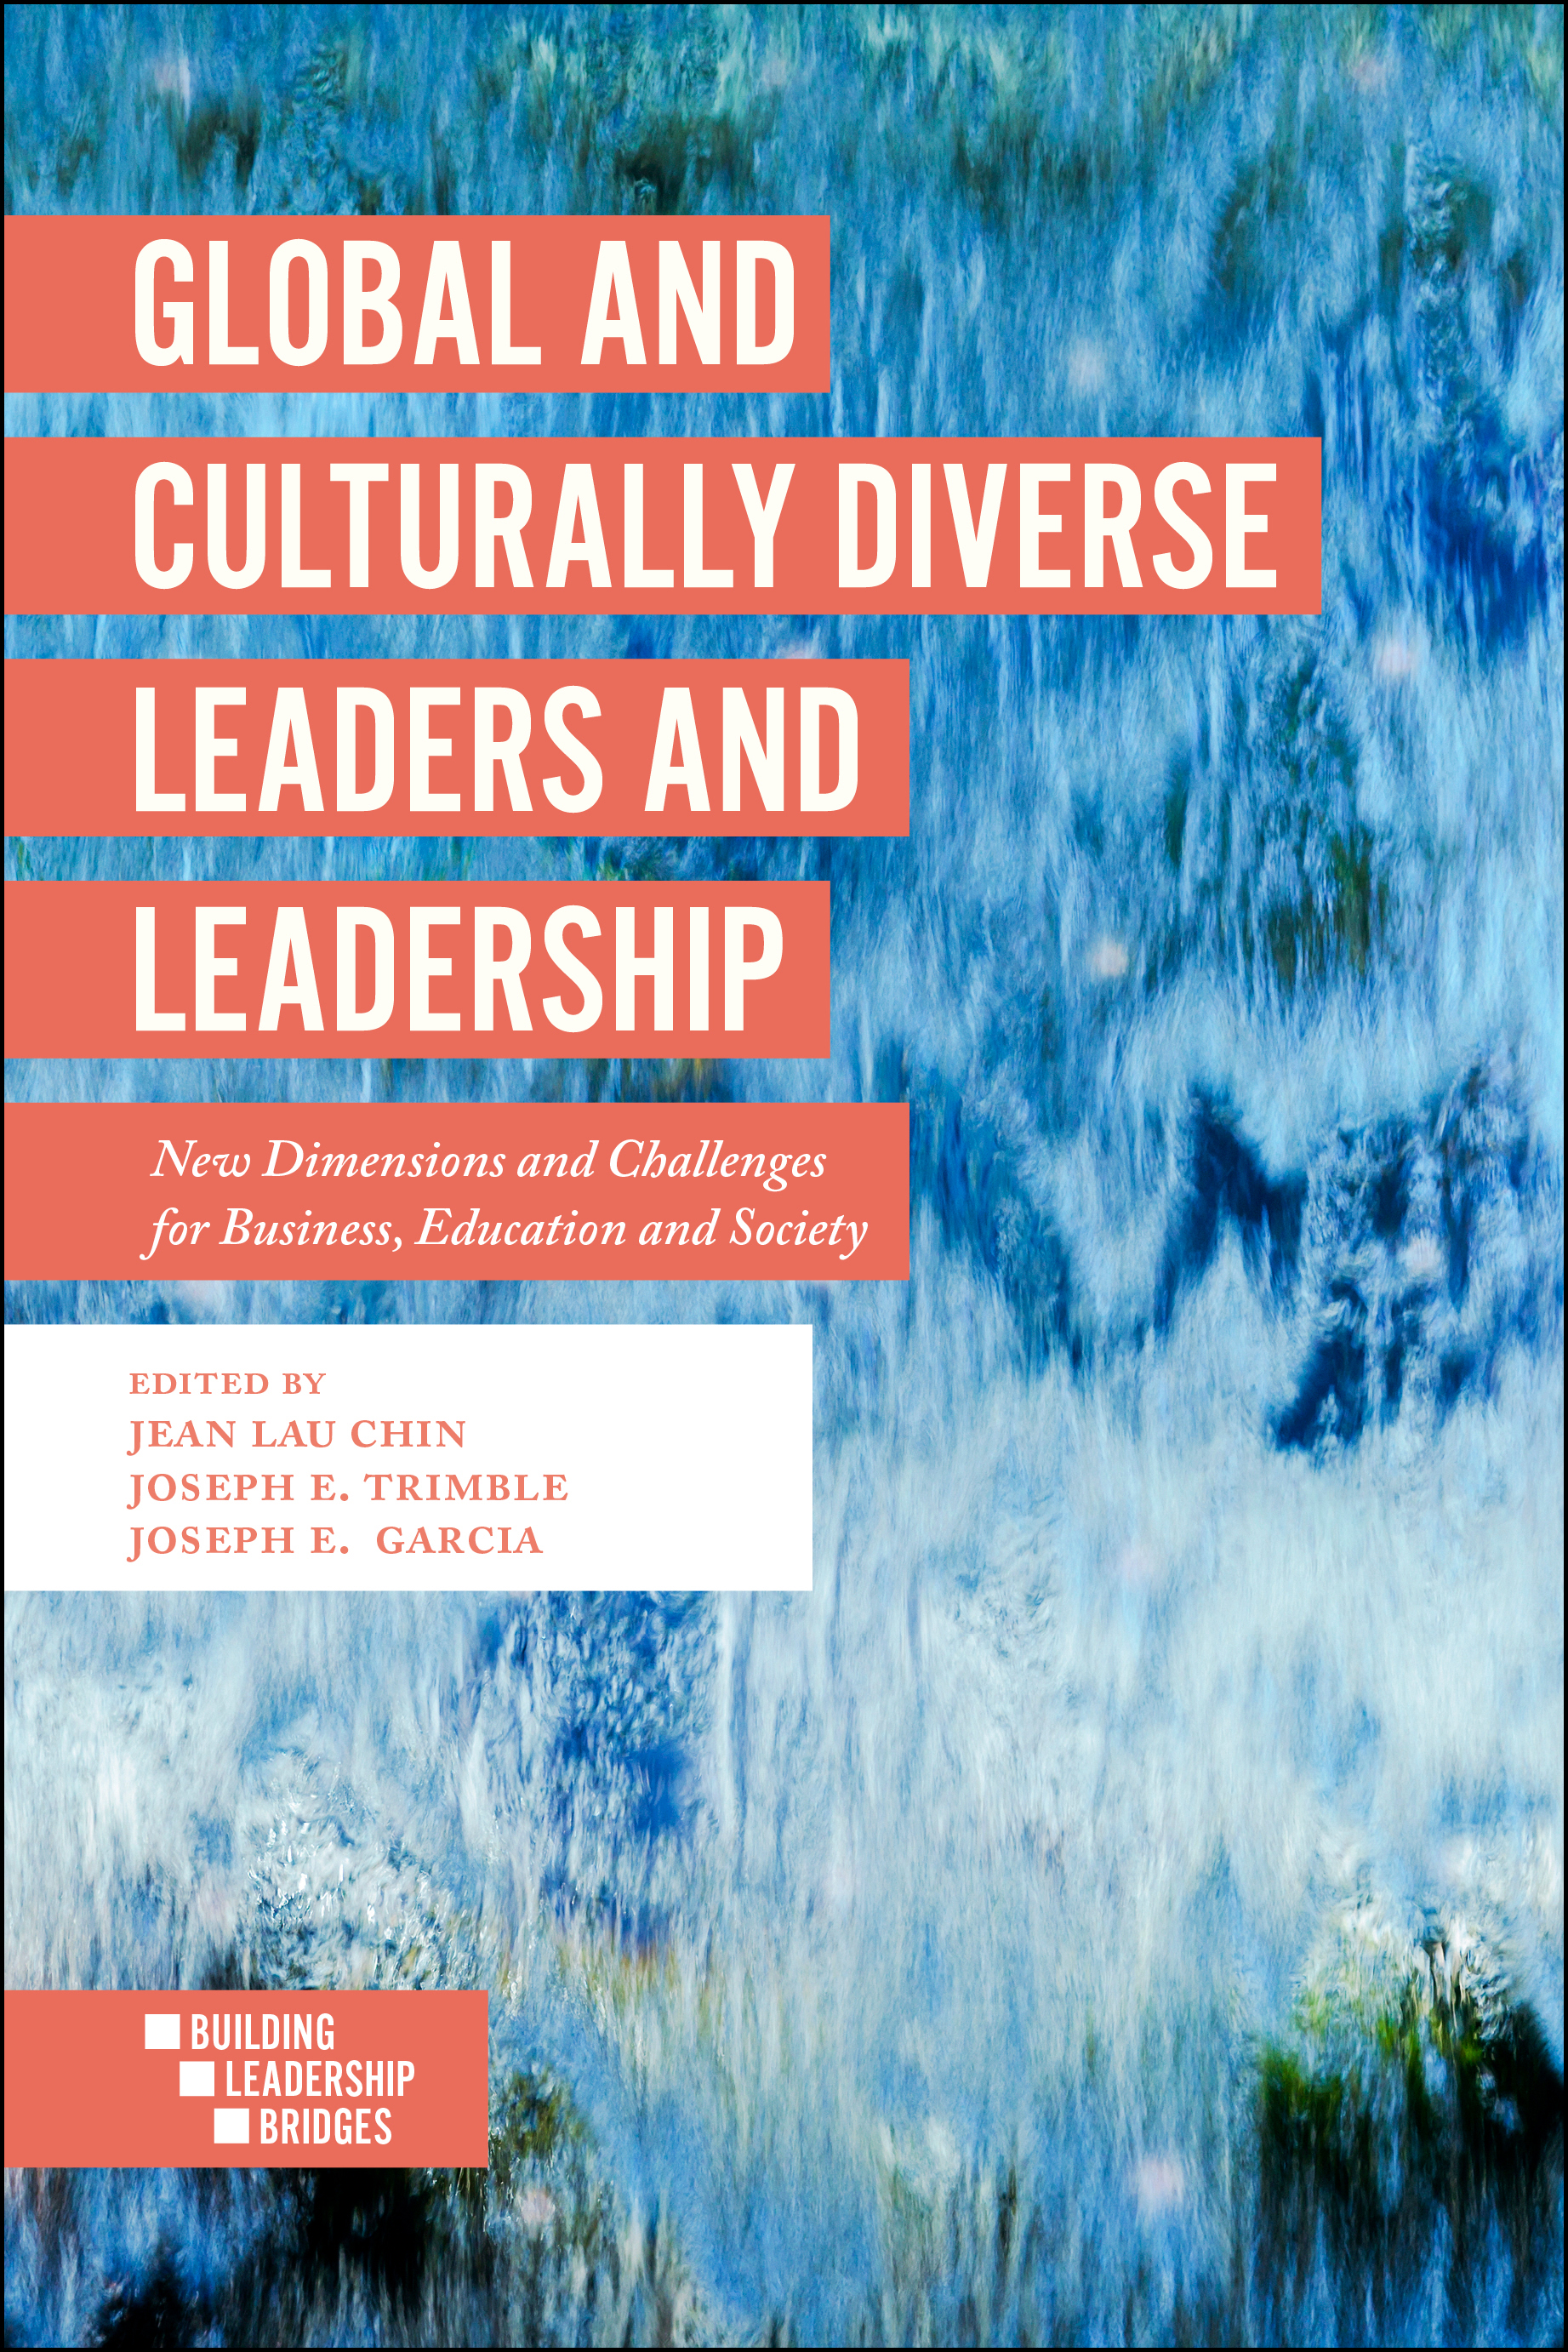 Book cover for Global and Culturally Diverse Leaders and Leadership:  New Dimensions and Challenges for Business, Education and Society a book by Professor Jean Lau Chin, Professor Joseph E. Trimble, Professor Joseph E. Garcia